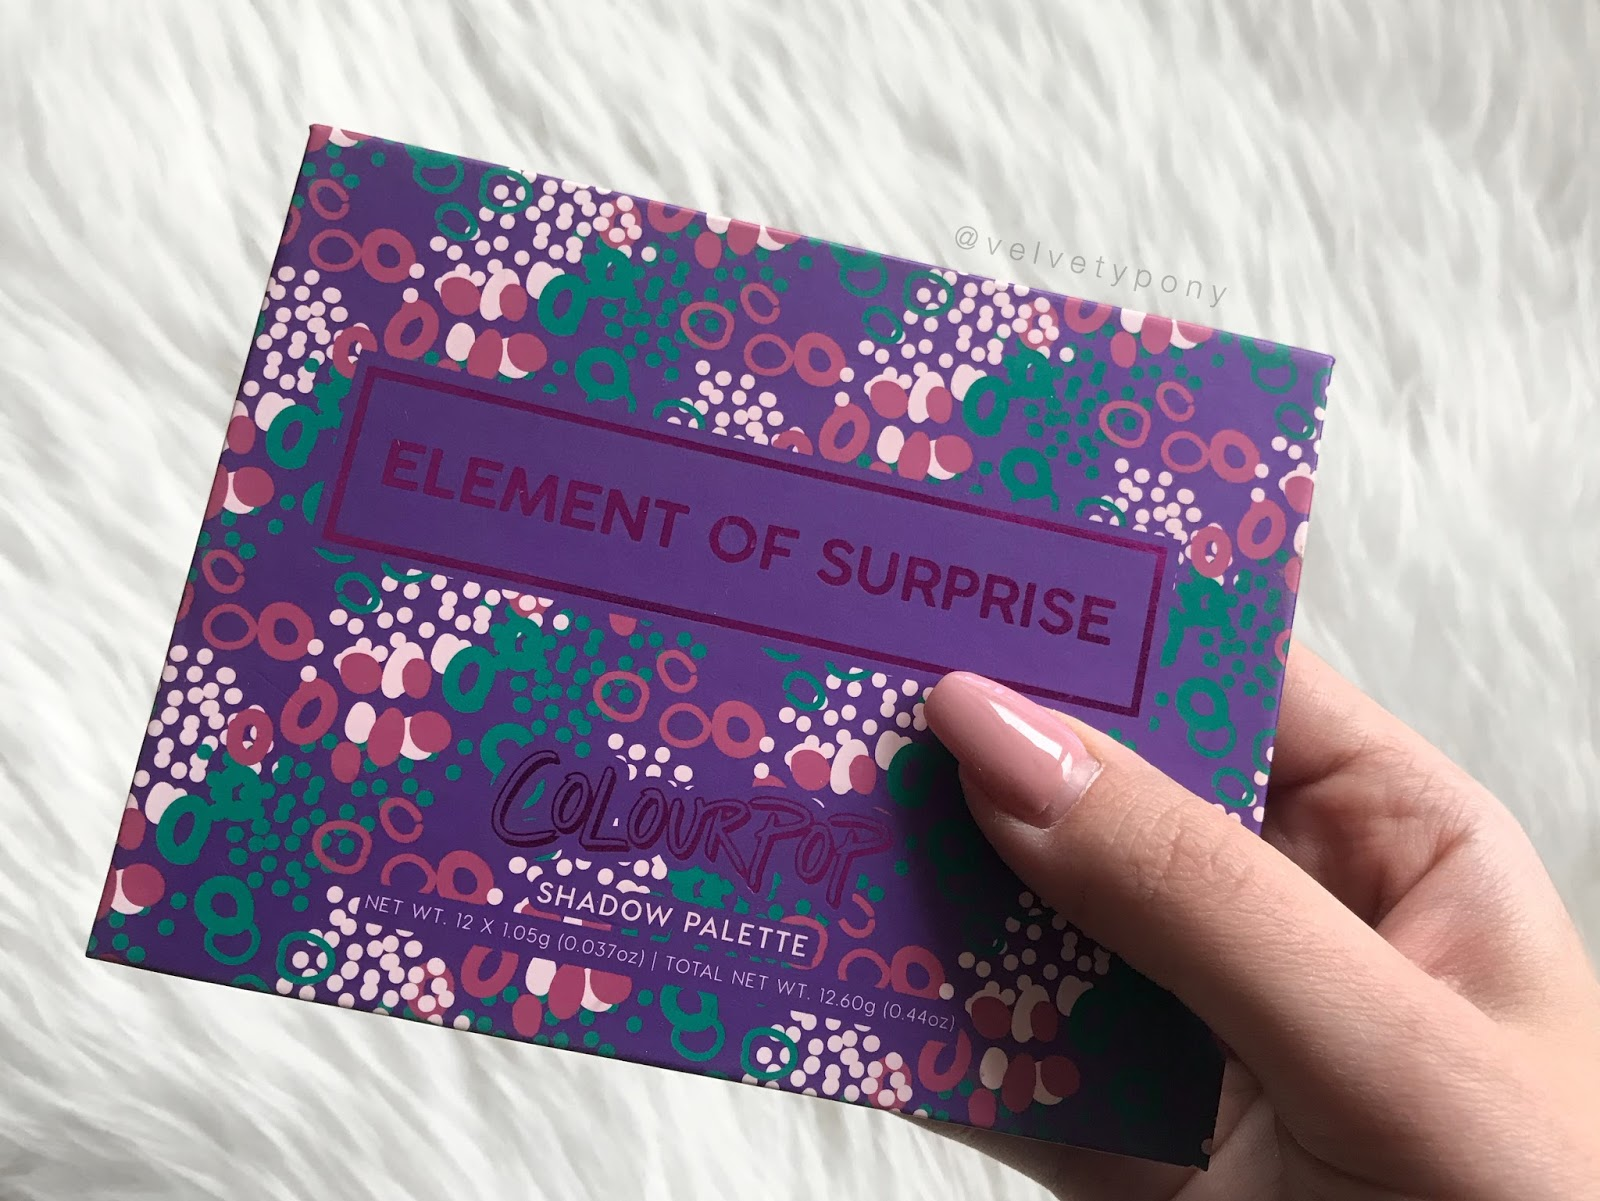 Colourpop Element of Surprise